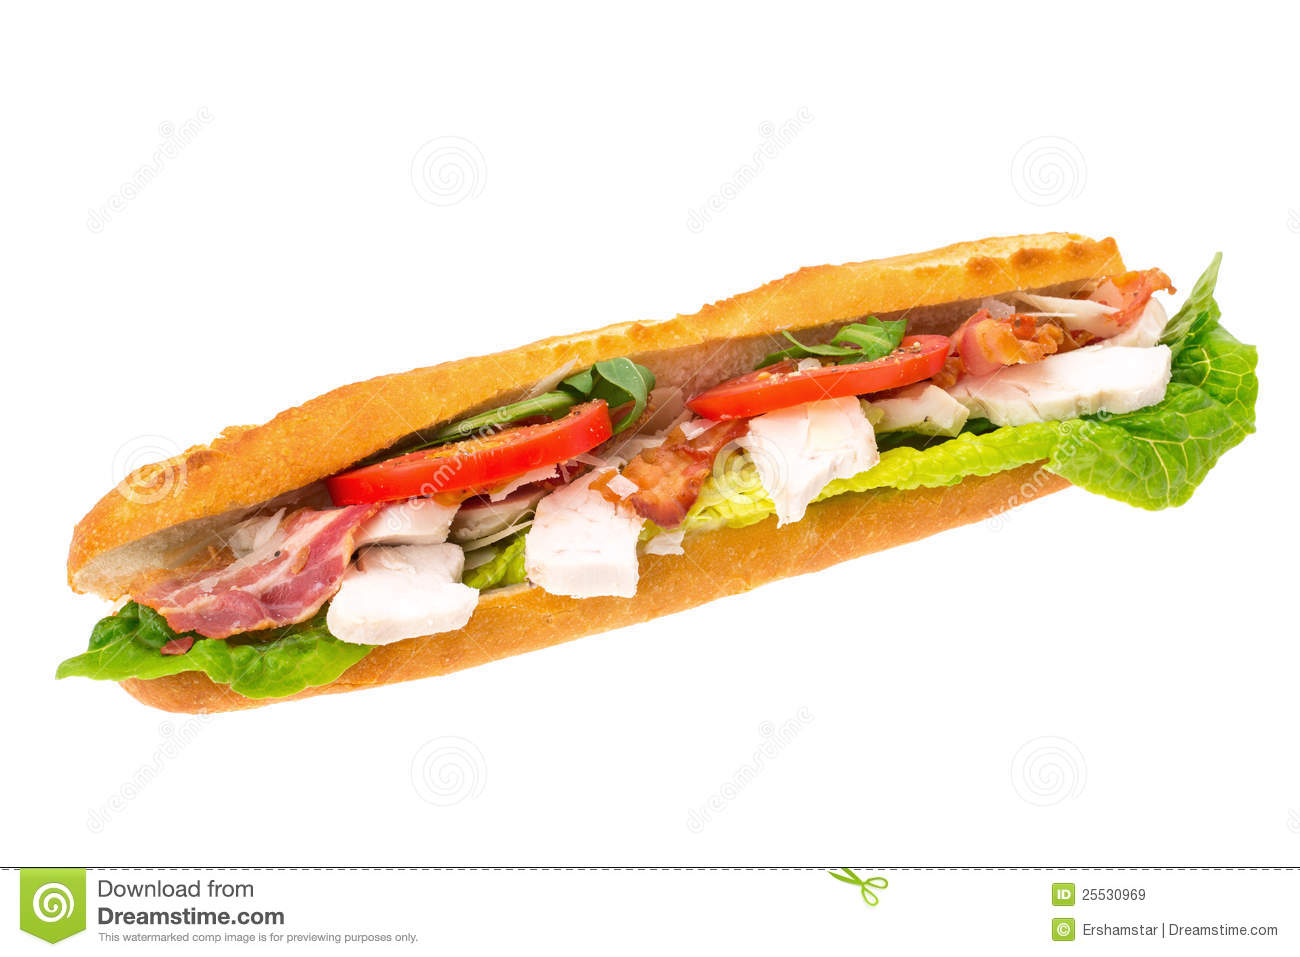 Chicken, Bacon And Salad Filled Baguette Royalty Free Stock Images - Image: 25530969